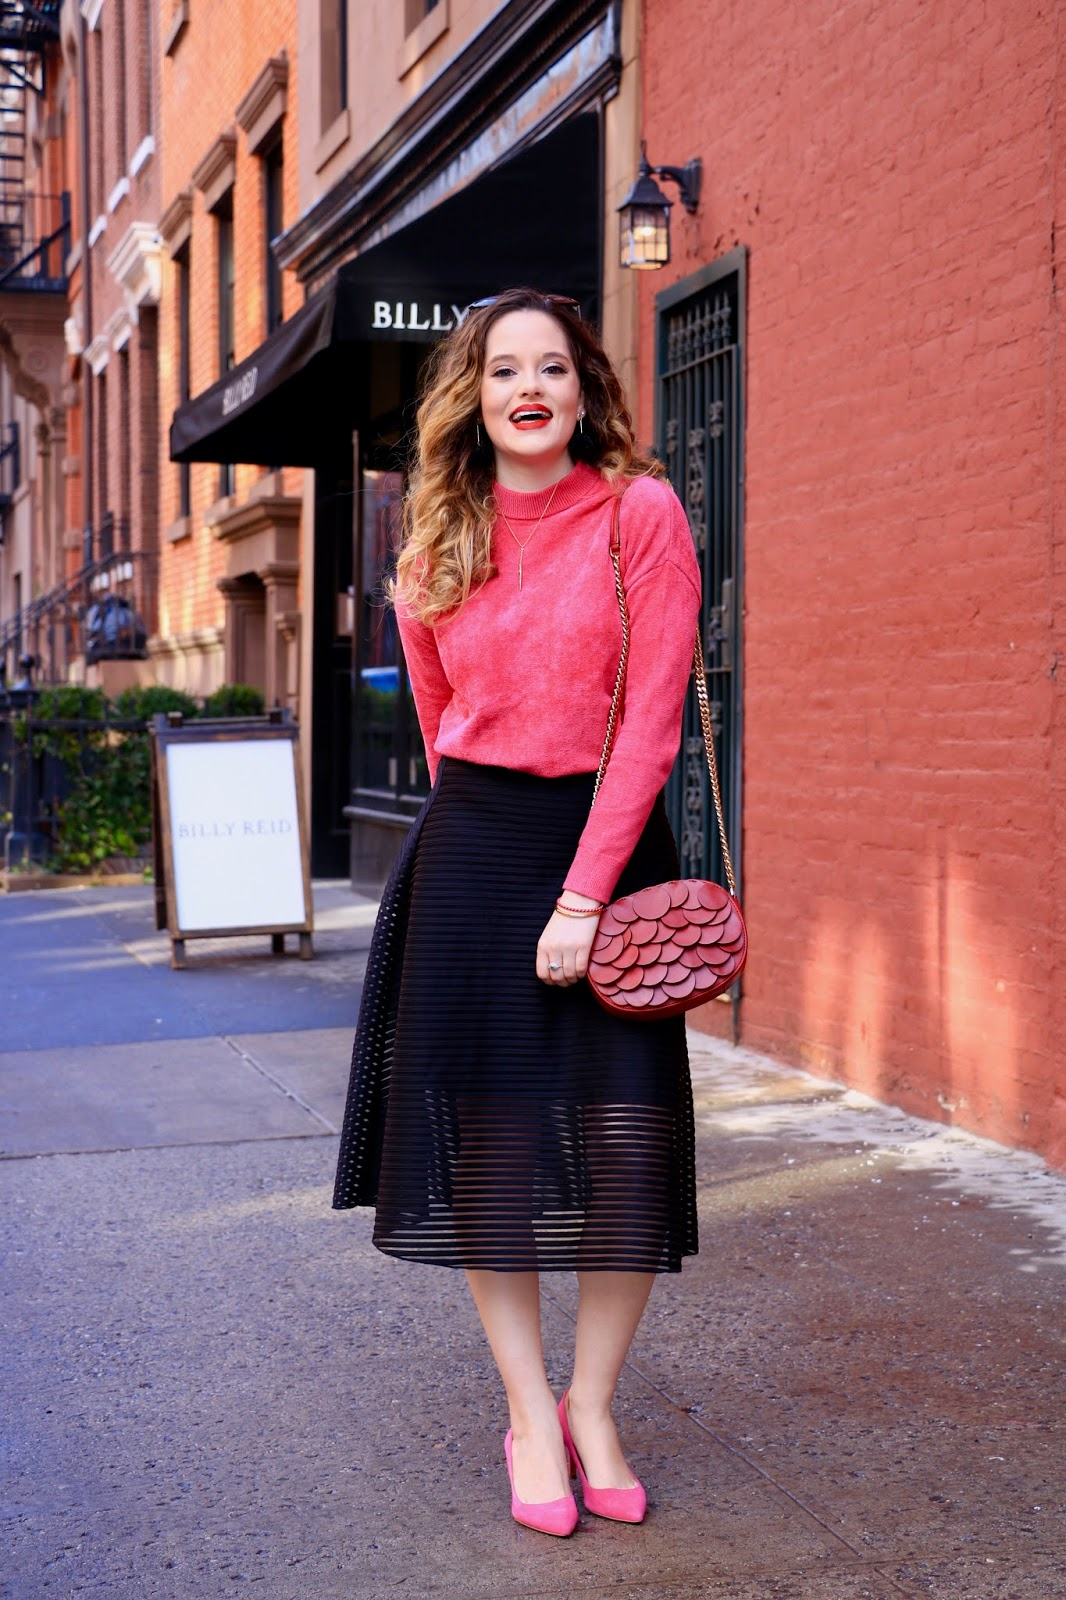 Nyc fashion blogger Kathleen Harper showing how to wear a skirt in the winter